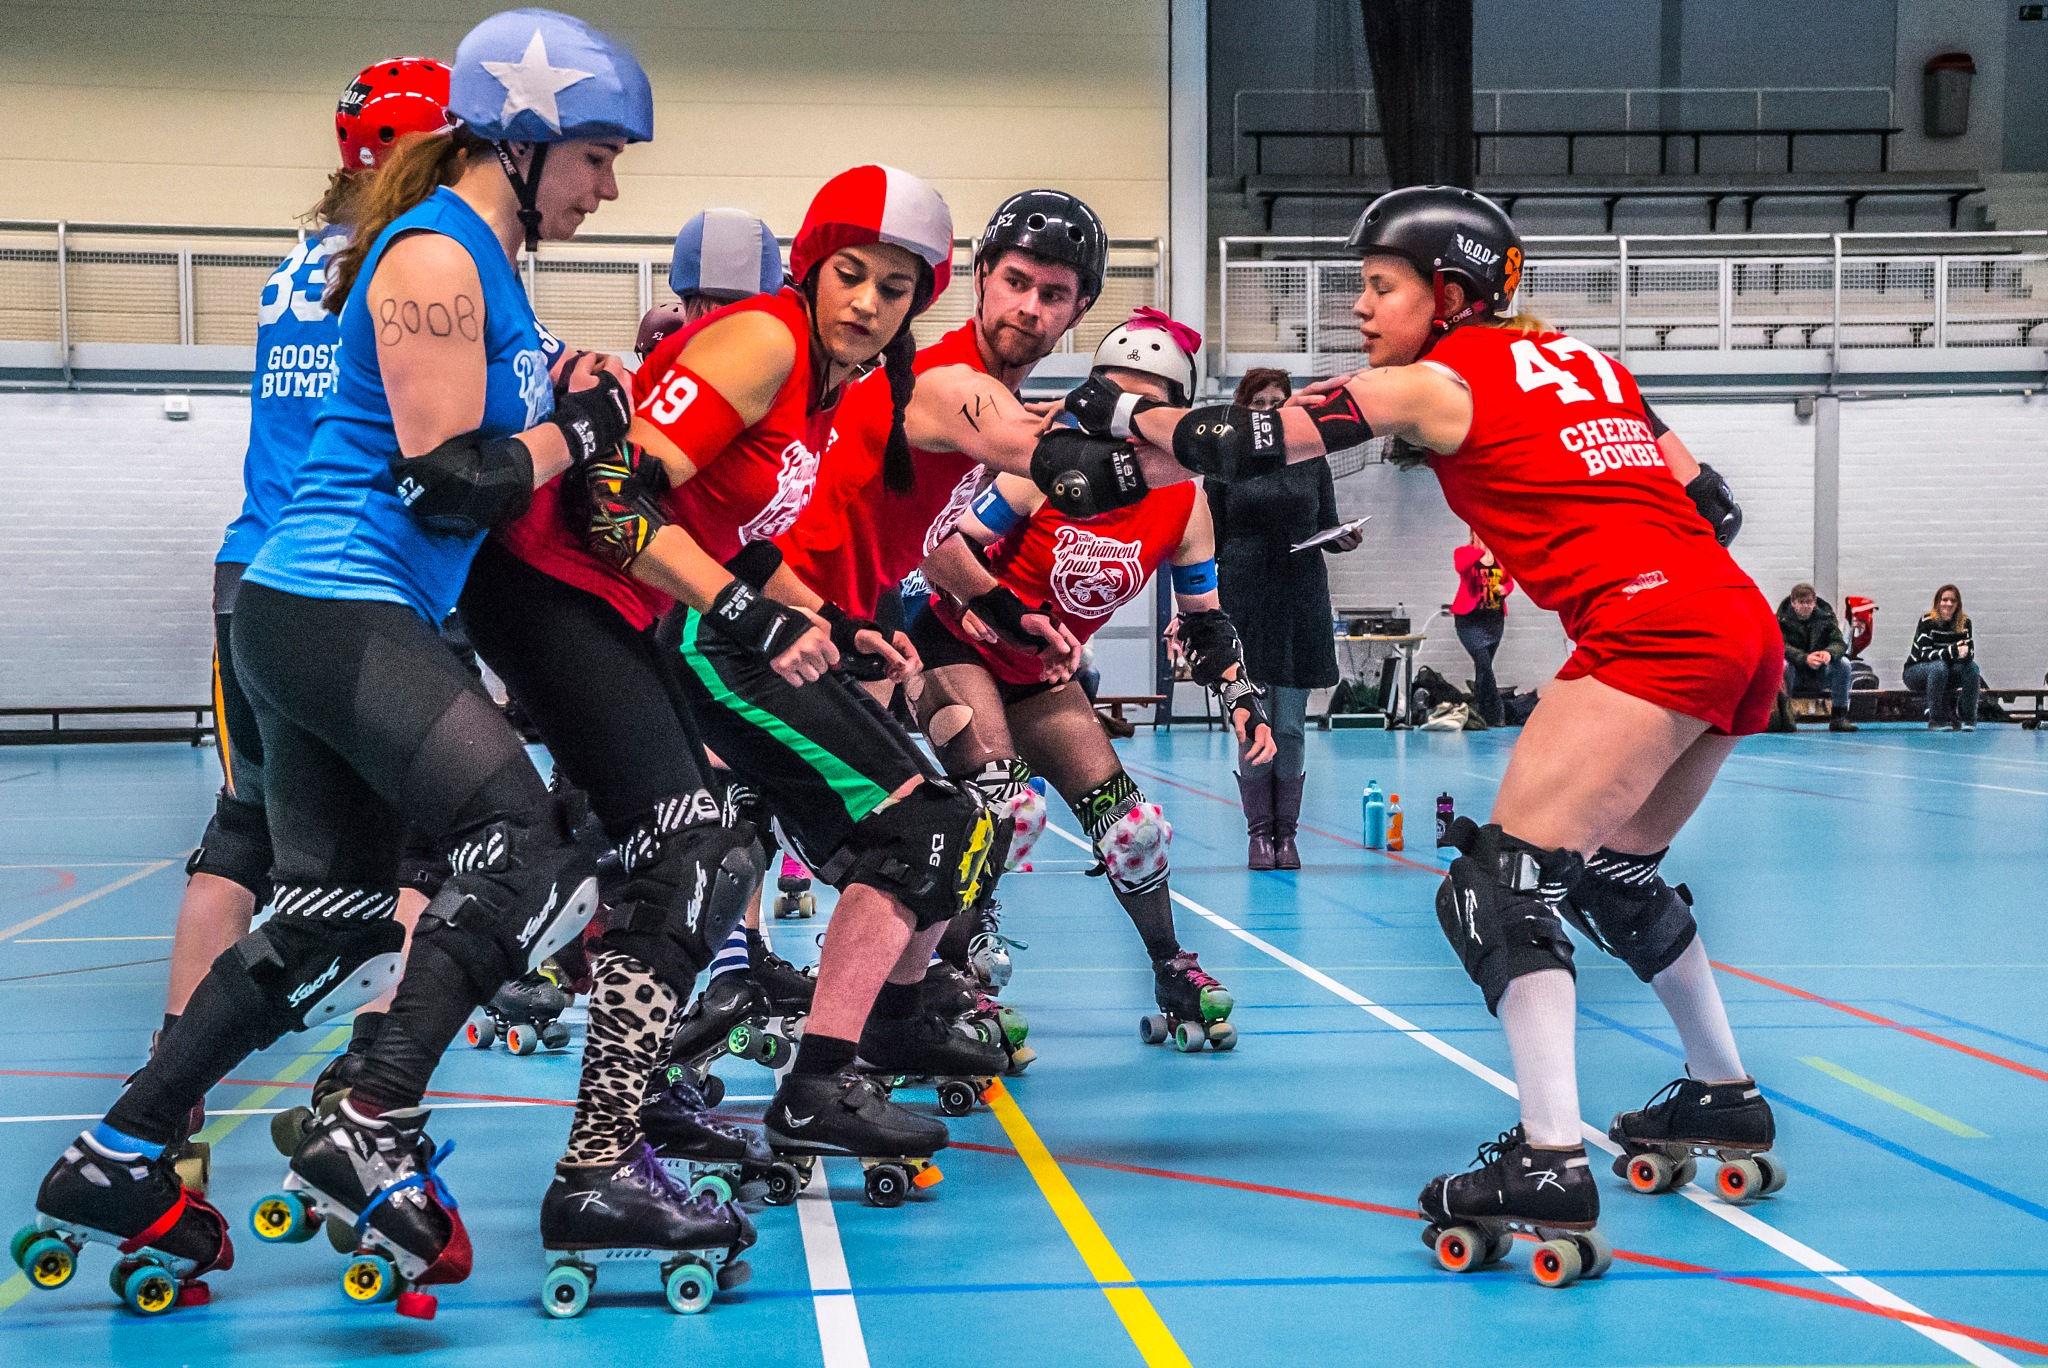 Roller derby by fred.leeflang.7